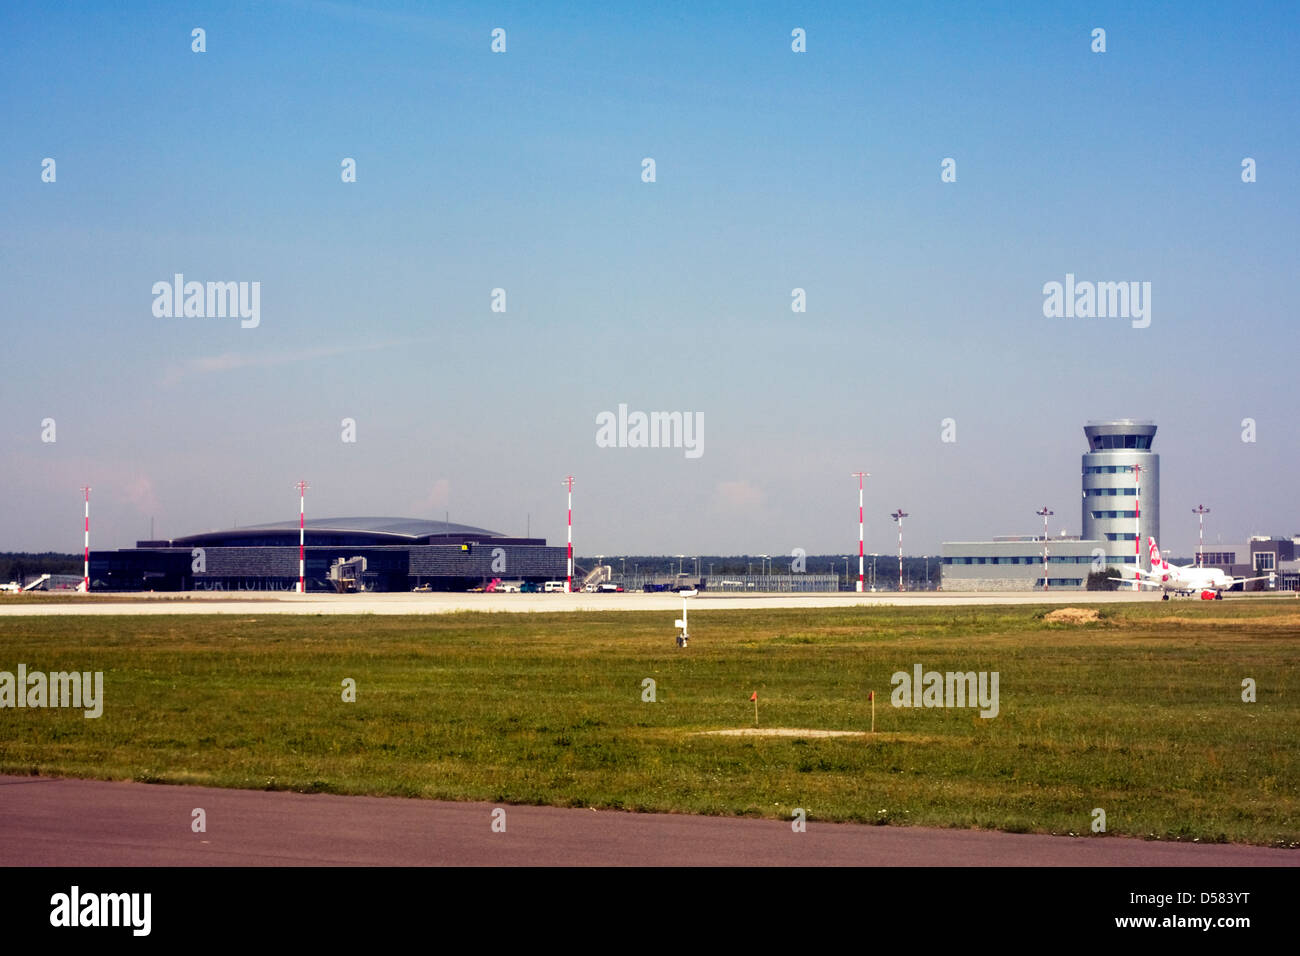 Terminal and control tower at Rzeszow Jasionka Airport, Rzeszow, Poland Stock Photo